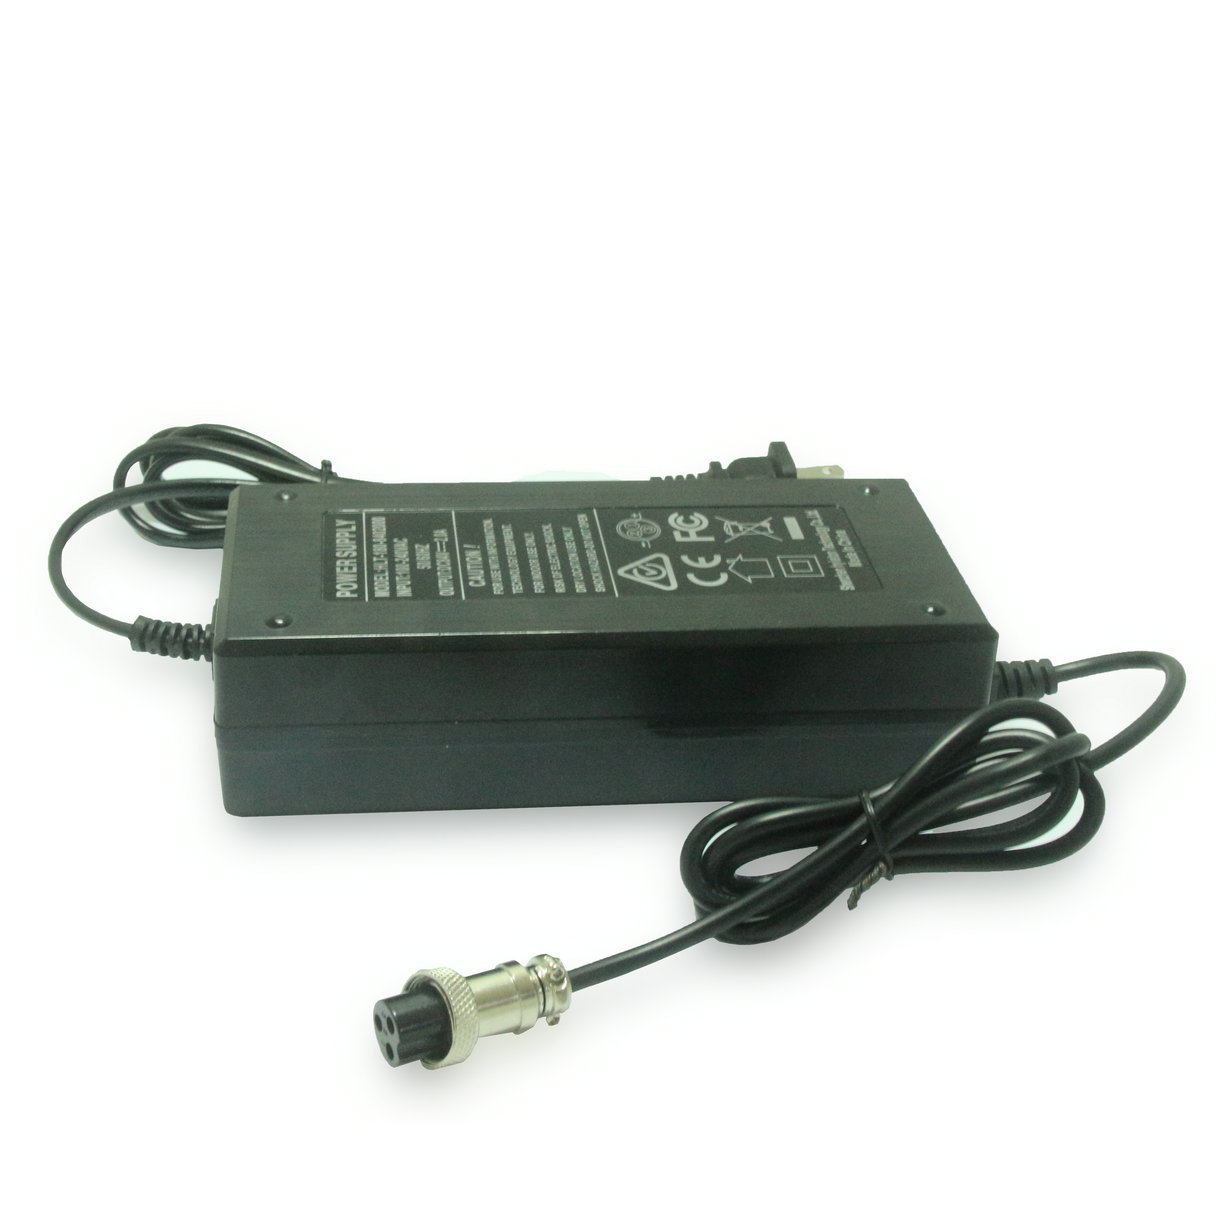 Ul Approved Safe Electric Scooter Board Charger Adapter 84w 42v 2a Battery Charger Electric Scooter